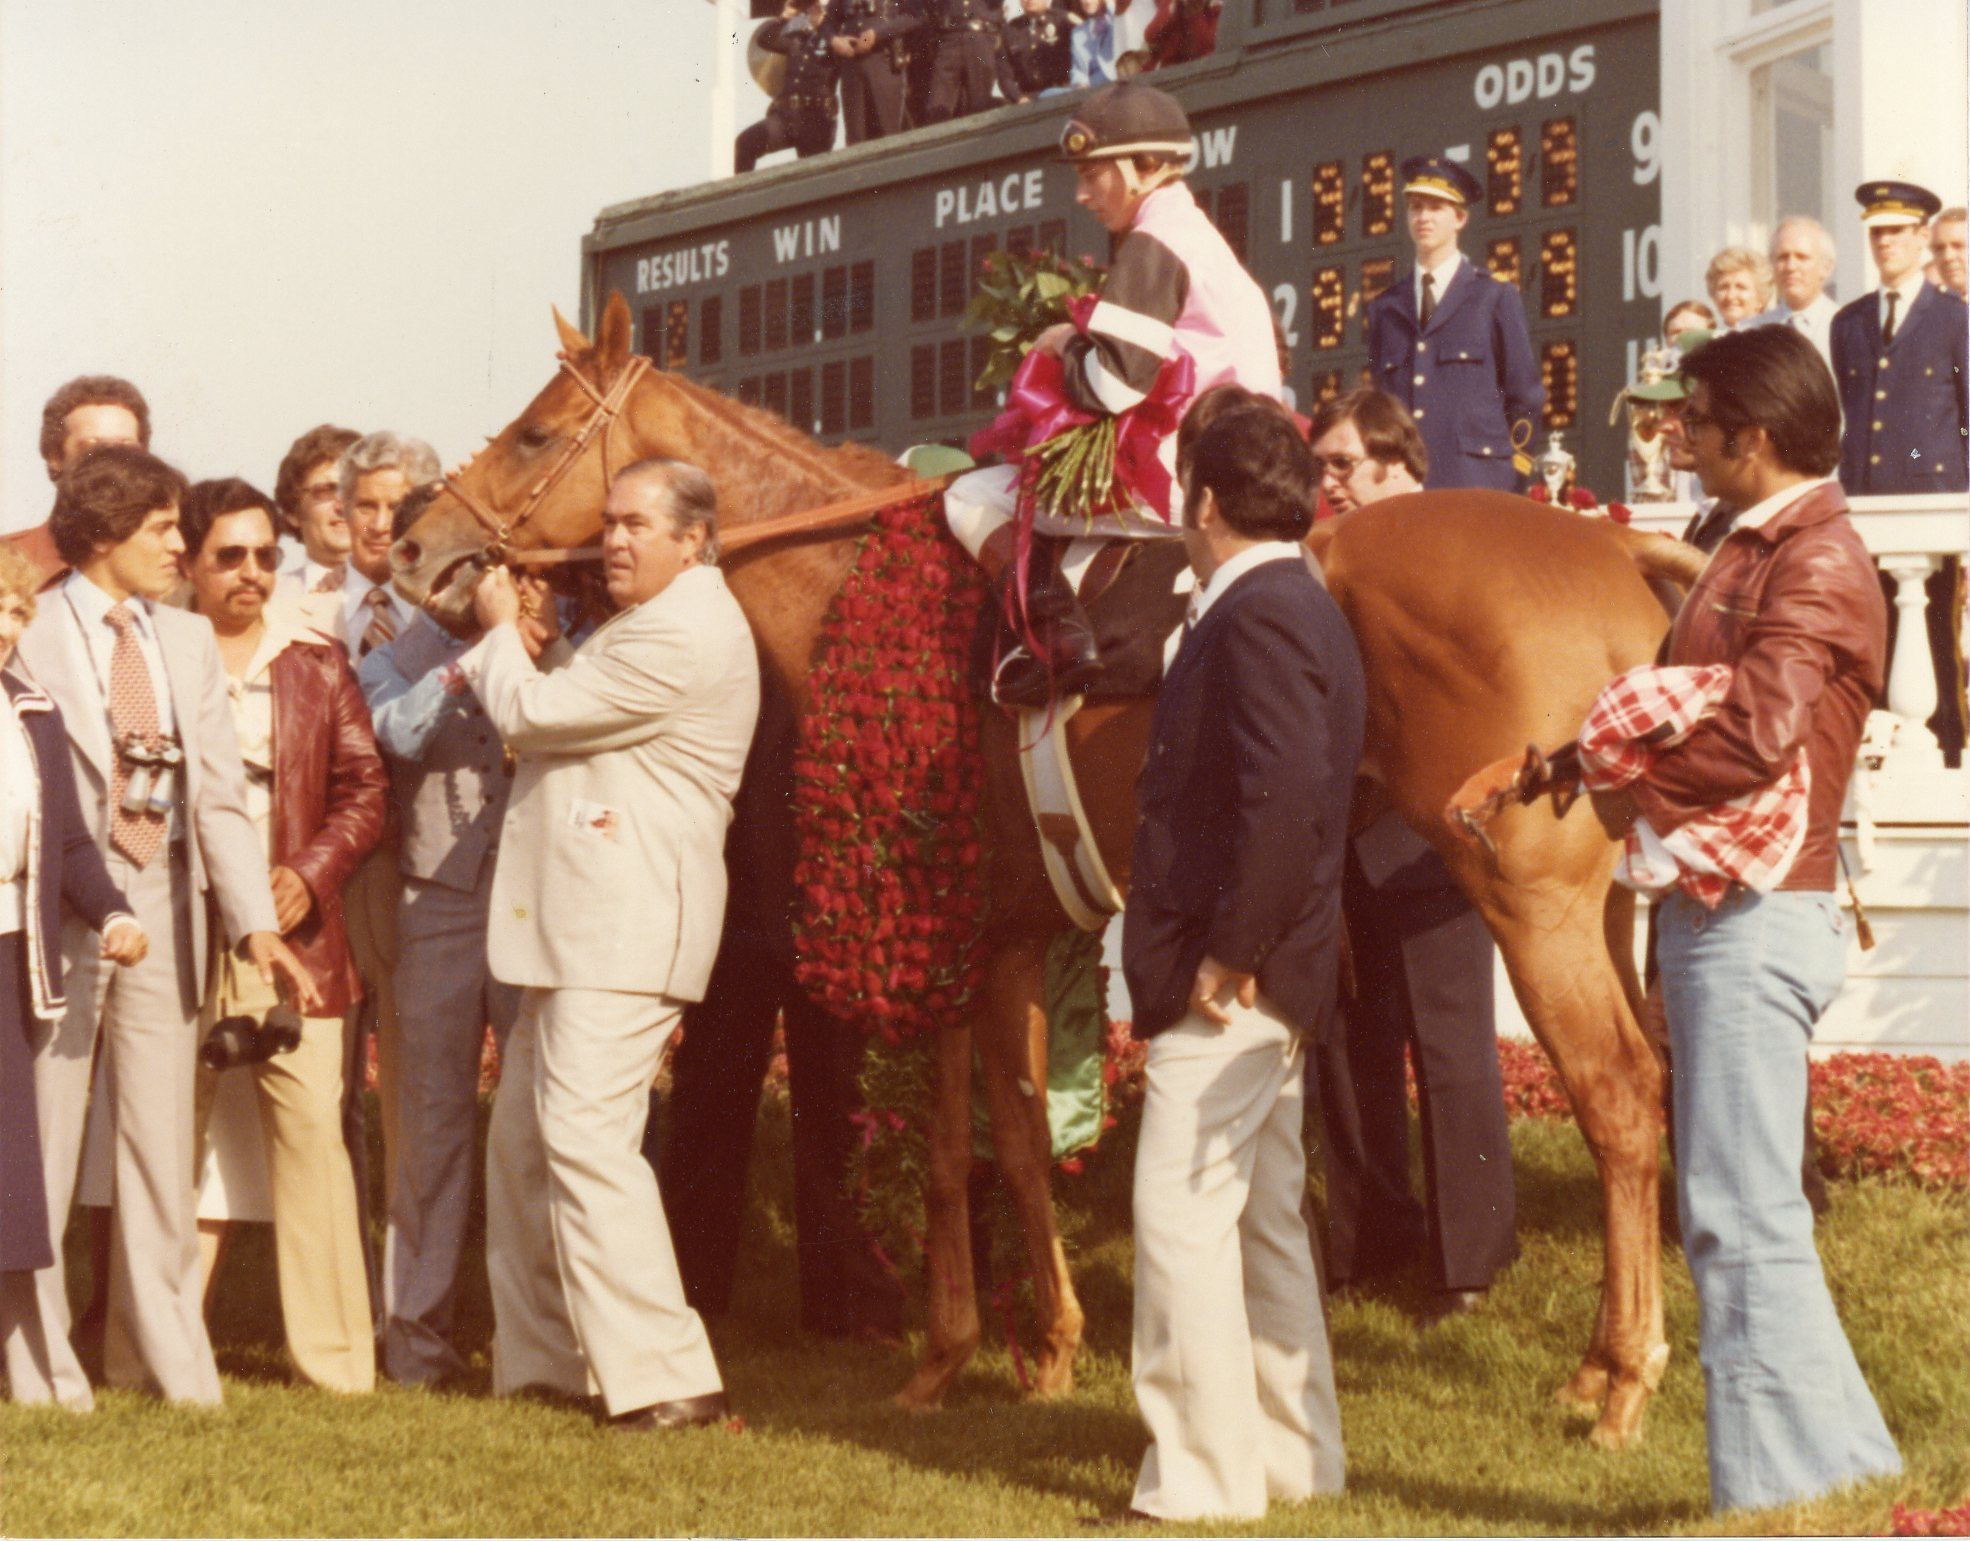 The 1978 Kentucky Derby Winner, Affirmed